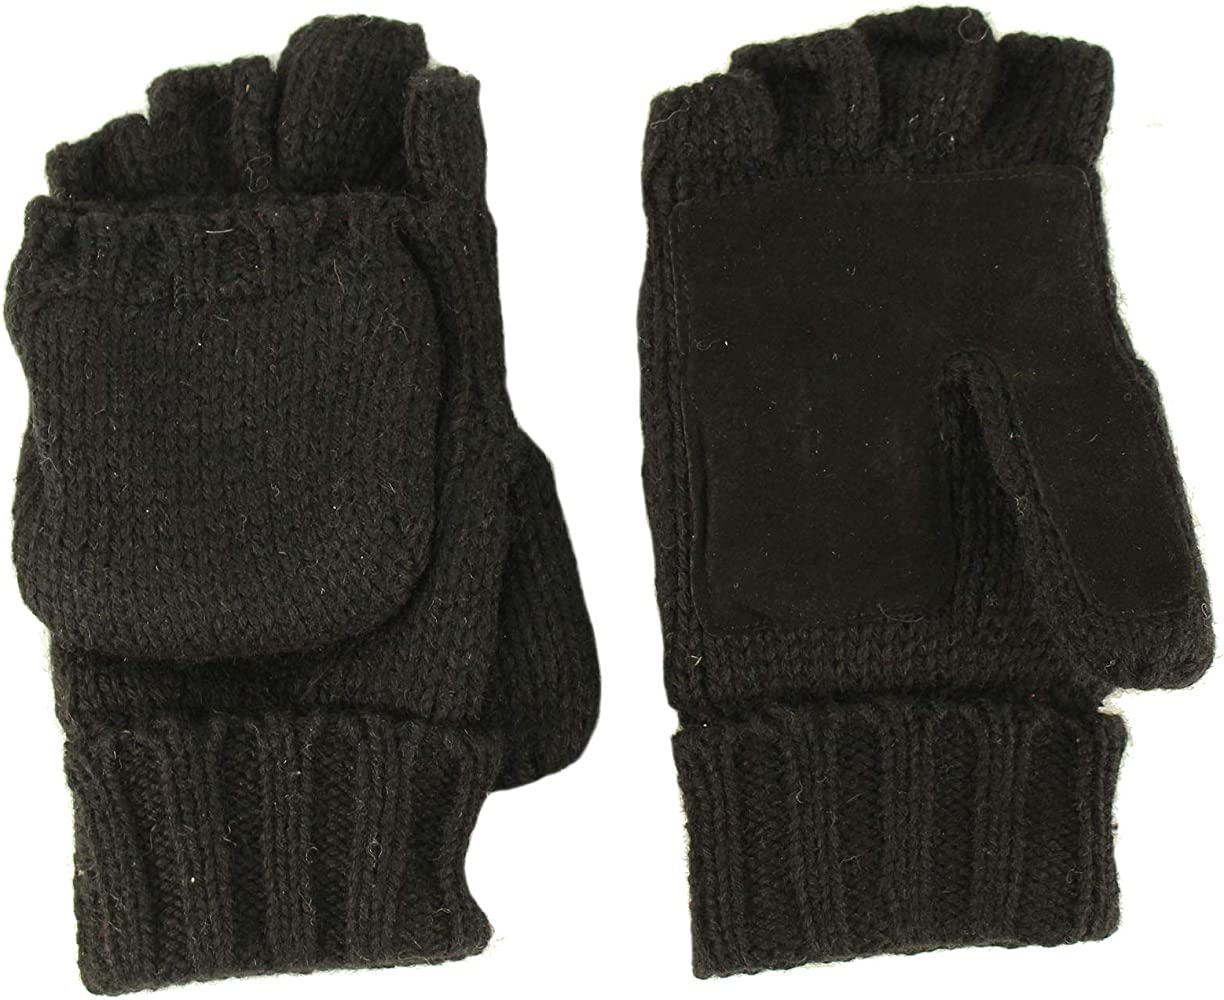 e3c3a46d099a9 Men's Thinsulate 3M Thick Wool Knitted Half Mitten Suede Palm Gloves S/M  Black